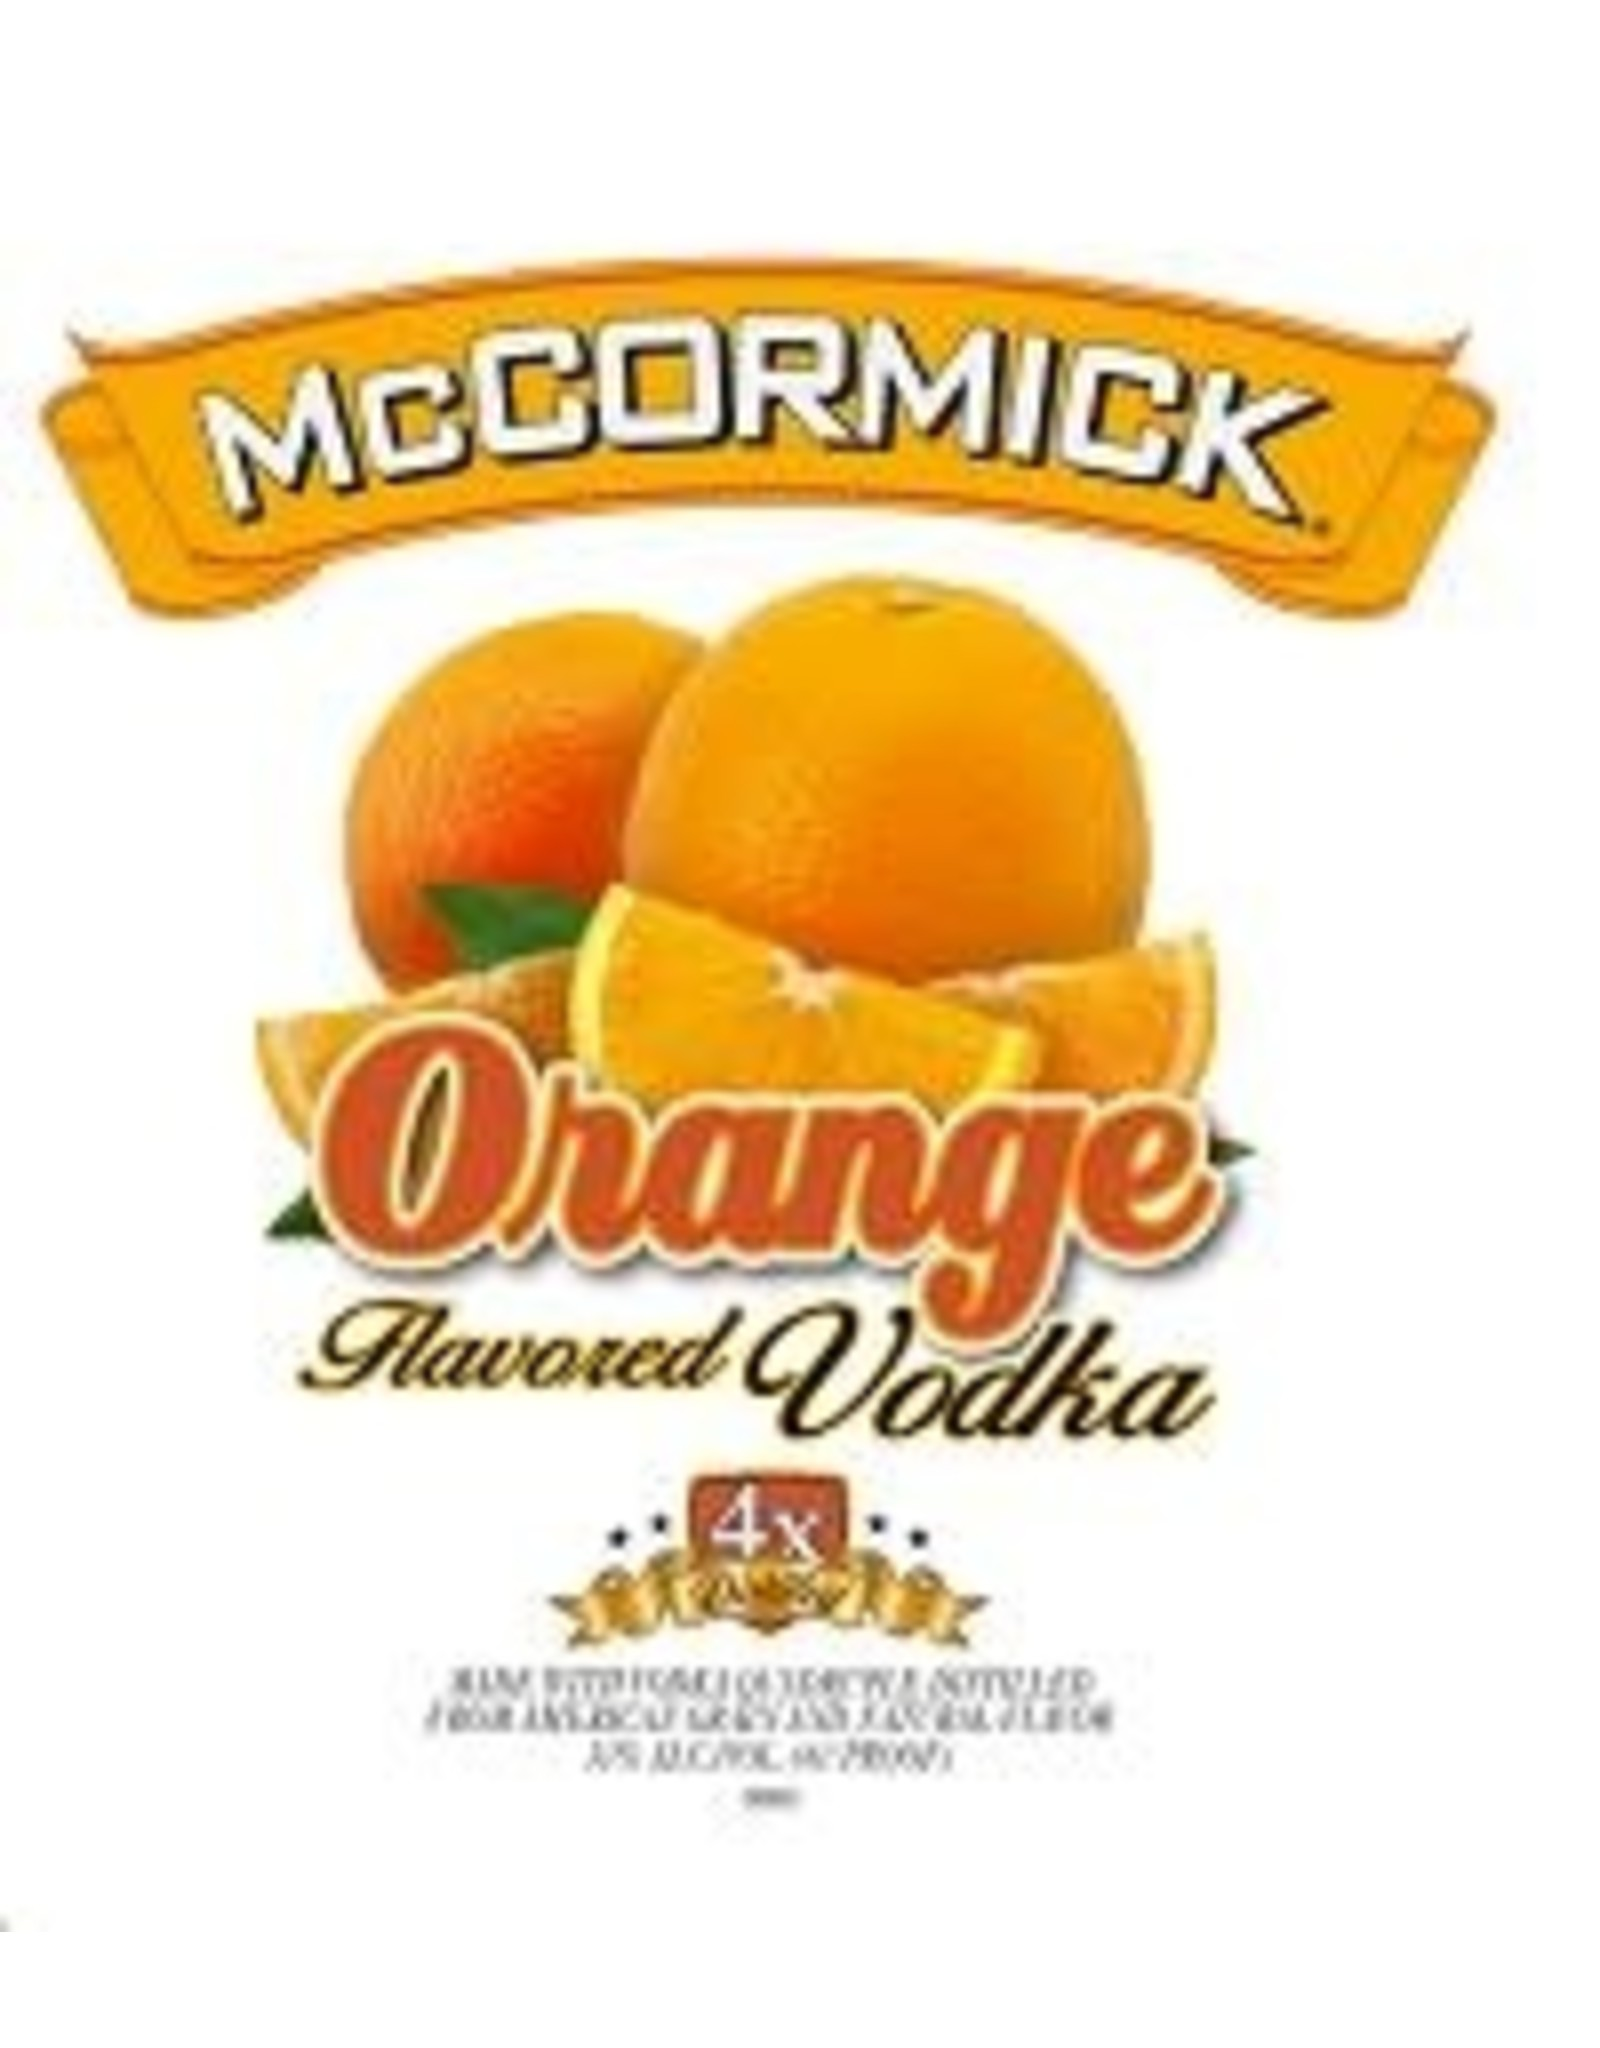 MCCORMICK ORANGE VODKA 1.75L